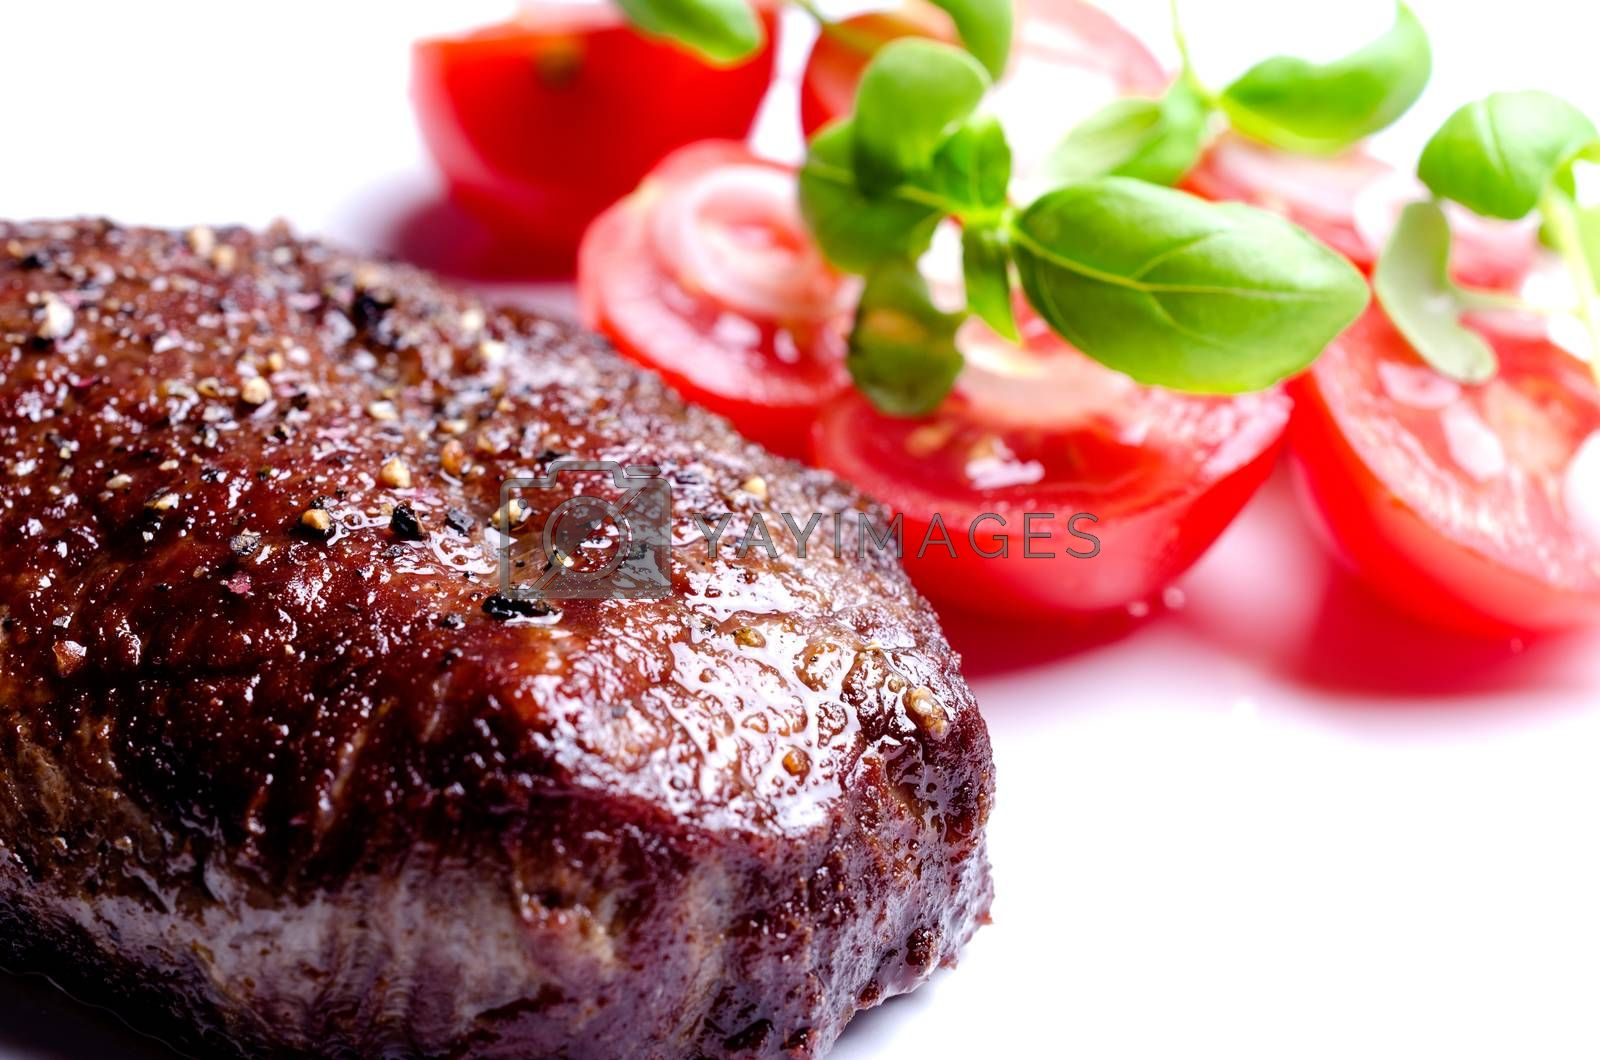 Grilled steak with tomatoes and oregano leafs by Nanisimova